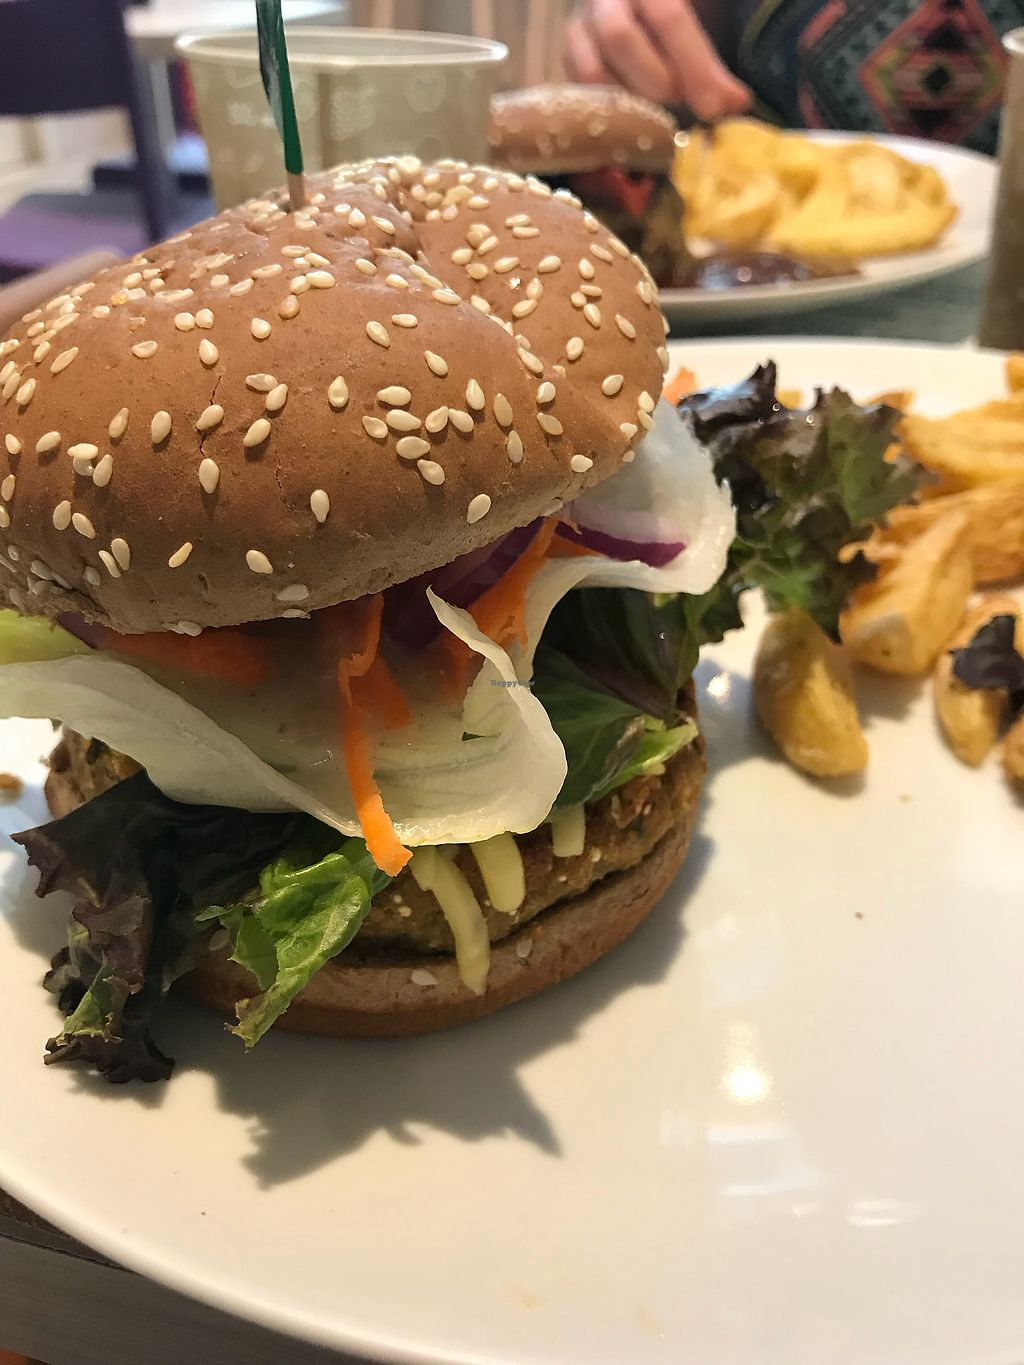 """Photo of Hareburger - Botafogo  by <a href=""""/members/profile/dazedkiwi"""">dazedkiwi</a> <br/>Quinoa burger <br/> October 19, 2017  - <a href='/contact/abuse/image/79582/316611'>Report</a>"""